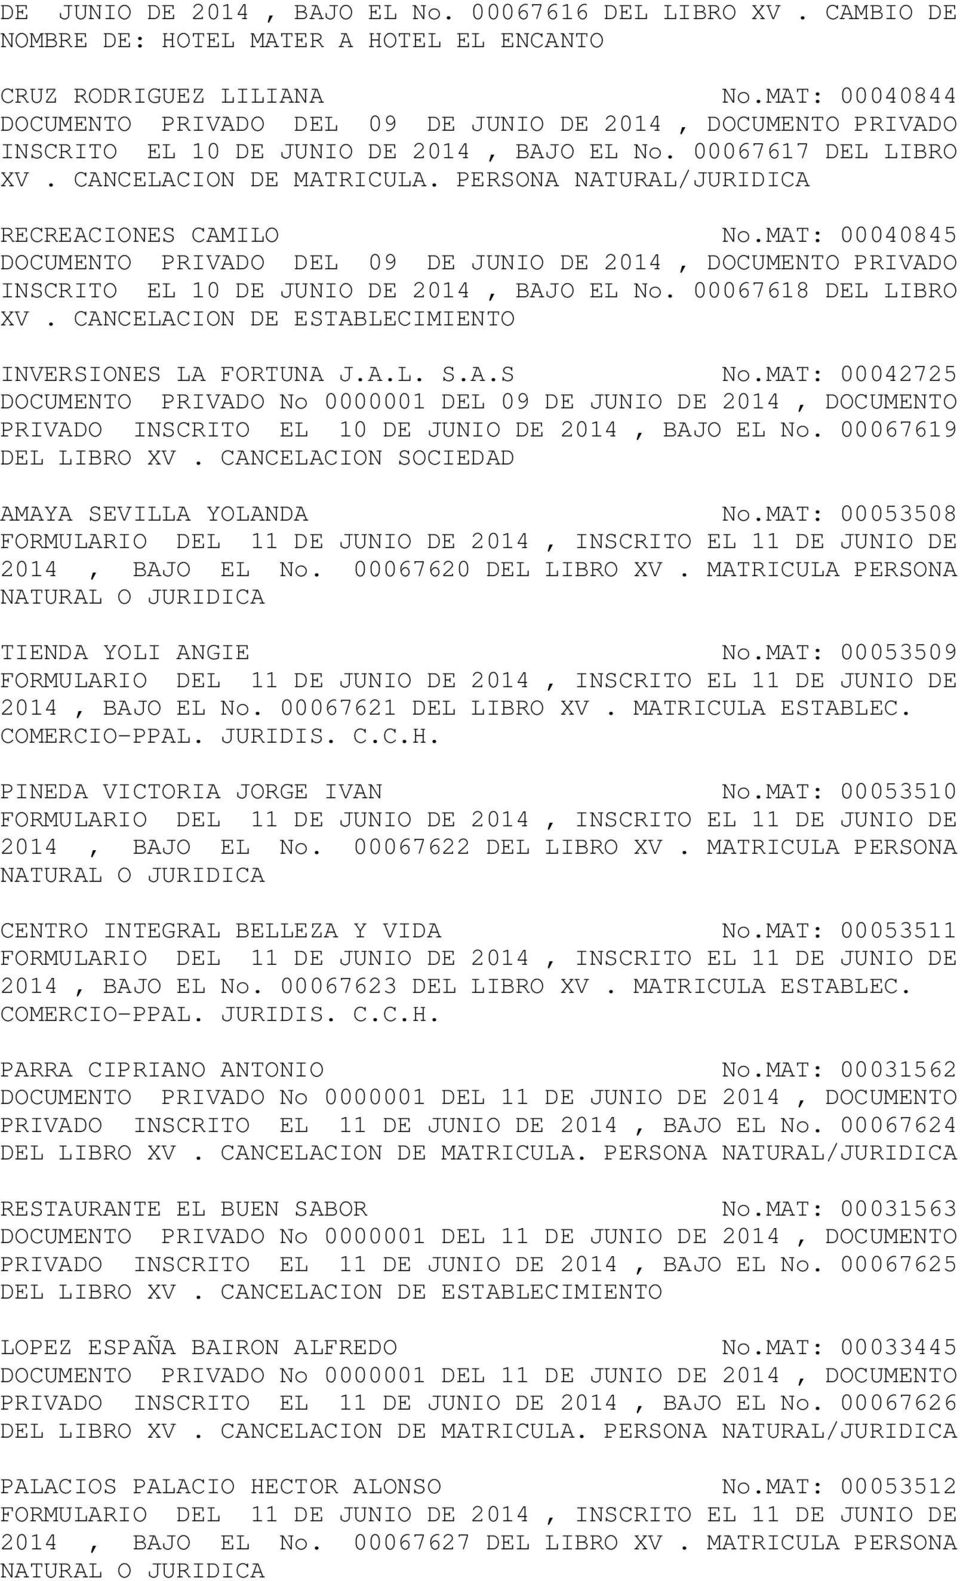 PERSONA NATURAL/JURIDICA RECREACIONES CAMILO No.MAT: 00040845 DOCUMENTO PRIVADO DEL 09 DE JUNIO DE 2014, DOCUMENTO PRIVADO INSCRITO EL 10 DE JUNIO DE 2014, BAJO EL No. 00067618 DEL LIBRO XV.